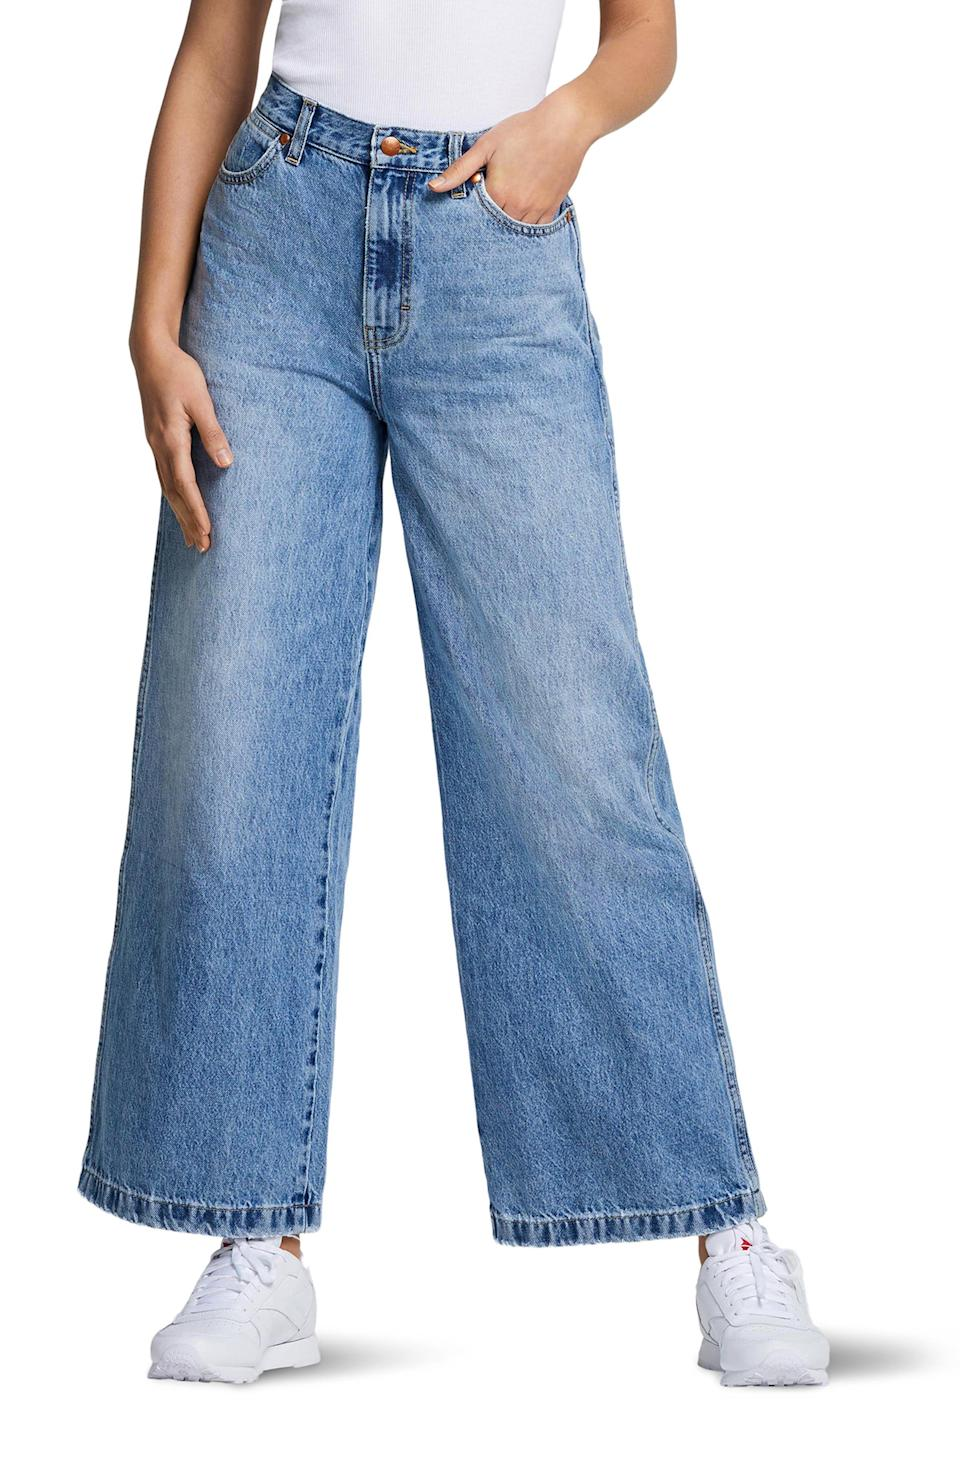 """<p><strong>WRANGLER</strong></p><p>nordstrom.com</p><p><strong>$53.90</strong></p><p><a href=""""https://go.redirectingat.com?id=74968X1596630&url=https%3A%2F%2Fwww.nordstrom.com%2Fs%2Fwrangler-high-waist-wide-leg-jeans-sunny%2F5818517&sref=https%3A%2F%2Fwww.womenshealthmag.com%2Flife%2Fg36999215%2Fviral-tiktok-items-nordstrom-sale%2F"""" rel=""""nofollow noopener"""" target=""""_blank"""" data-ylk=""""slk:Shop Now"""" class=""""link rapid-noclick-resp"""">Shop Now</a></p><p>Yes, these are <em>those</em> jeans that inspired fashion and denim lovers alike to donate all their skinny jeans. The high waist offers comfortable support, and the wide leg gives off a cool, breezy vibe that's perfect for summer.</p>"""